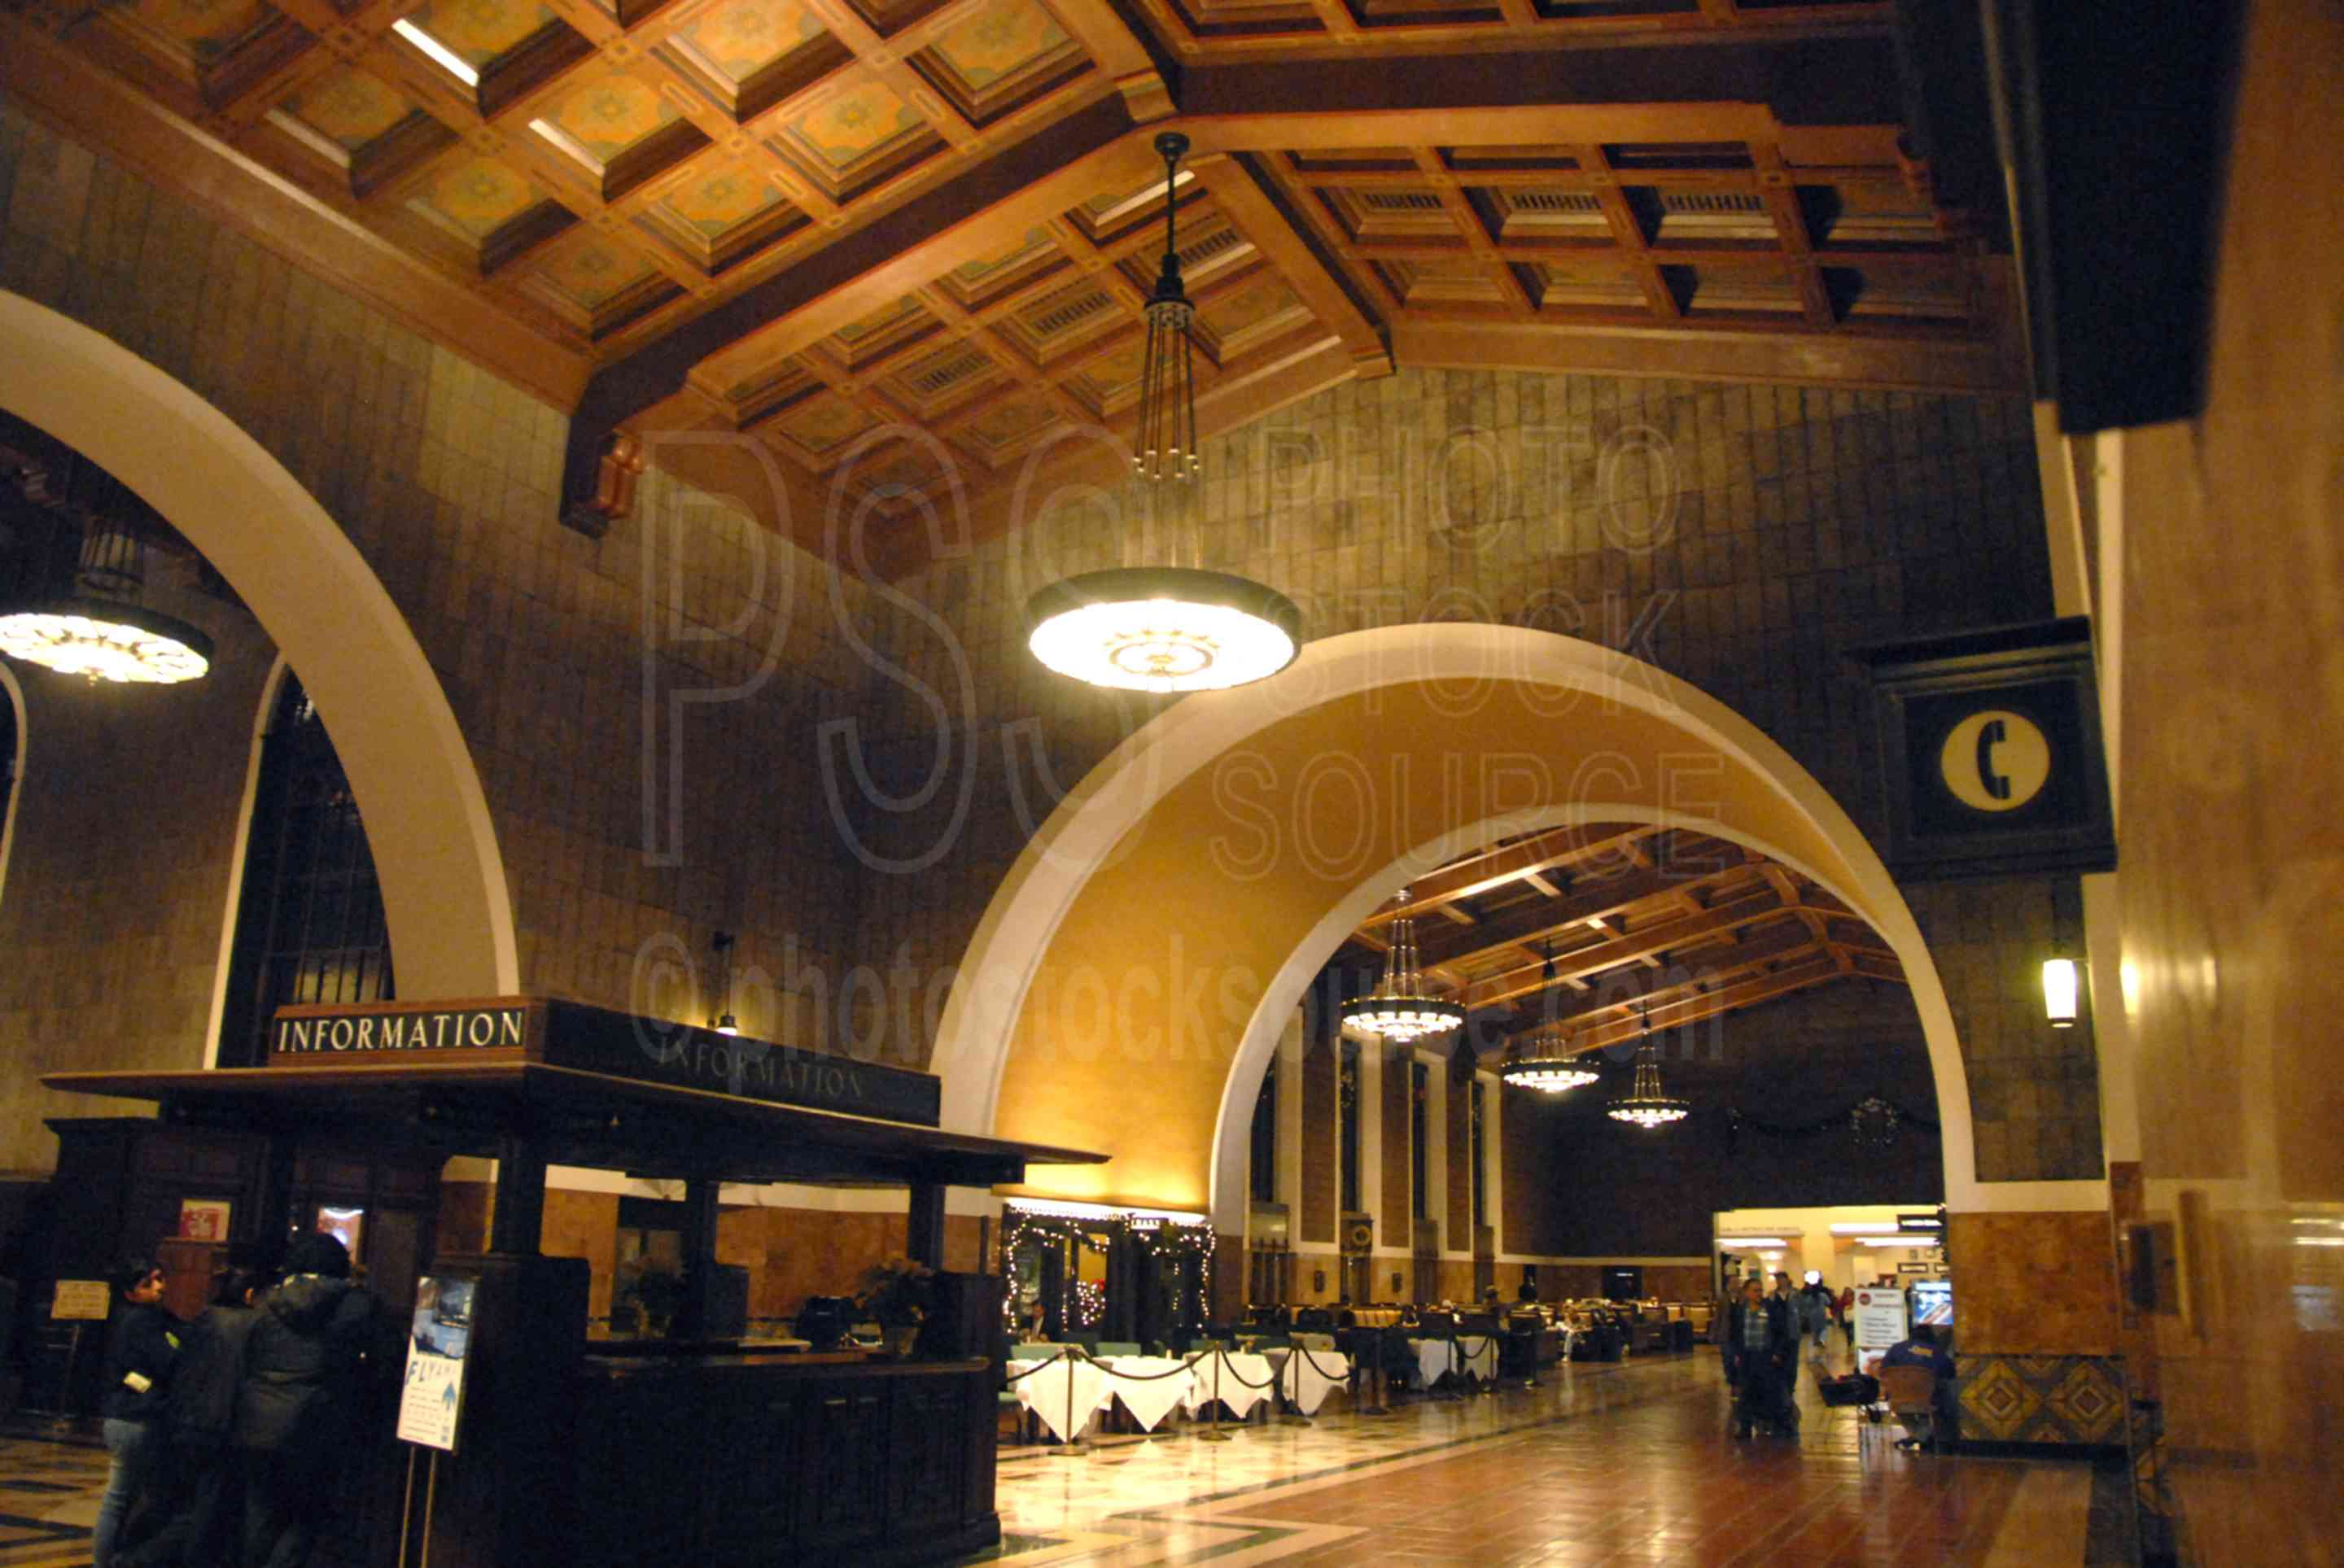 Union Station Interior,station,train station,interior,lobby